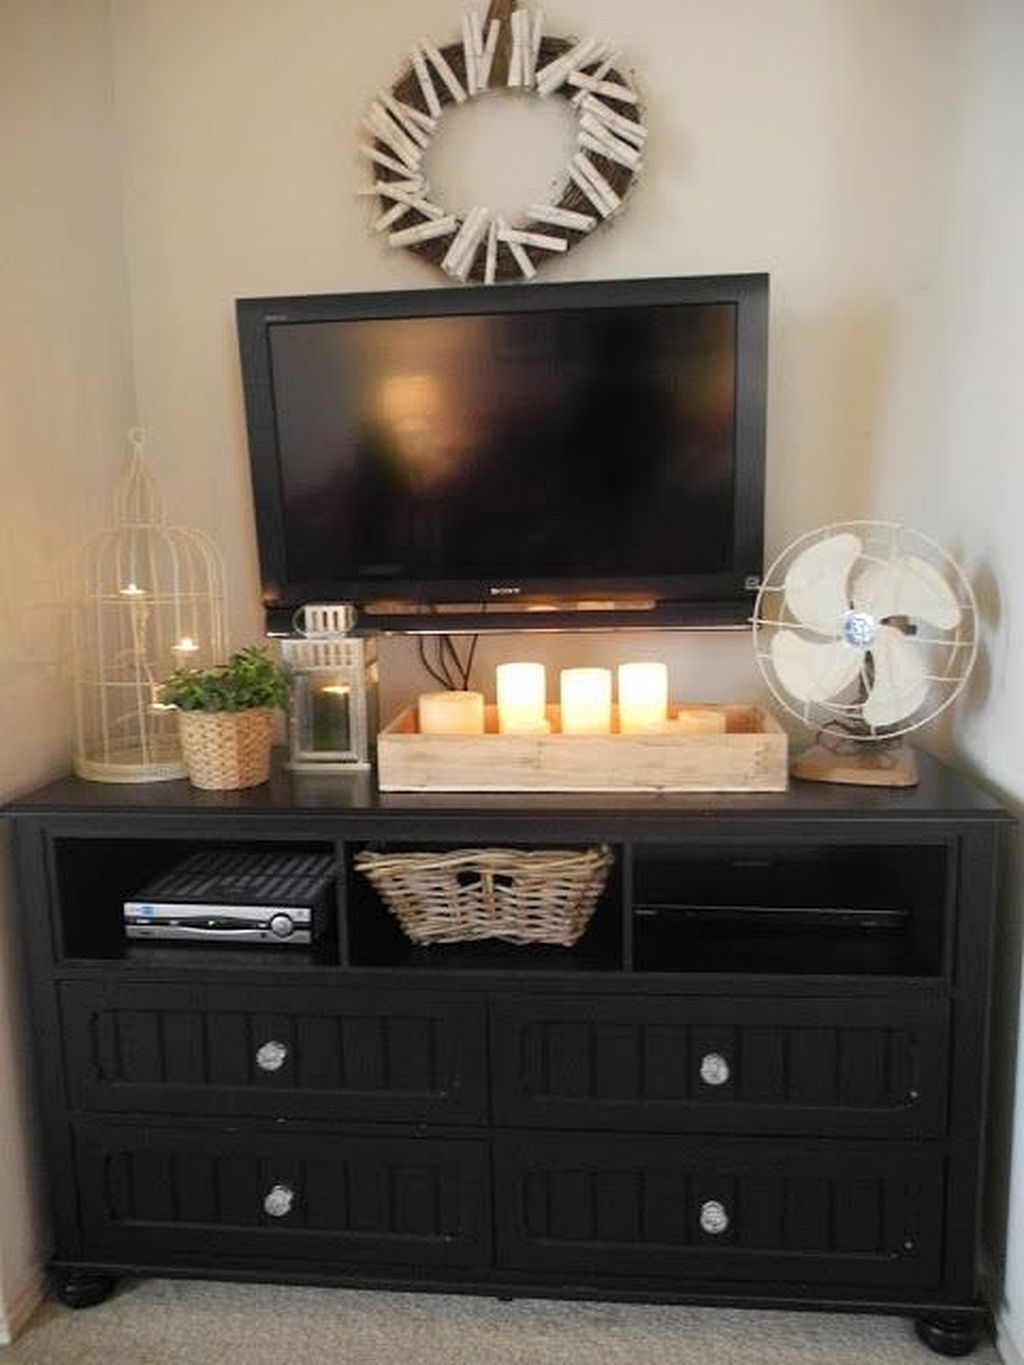 Pin By Crystal Jones On Farmhouse Everything Bedroom Tv Stand